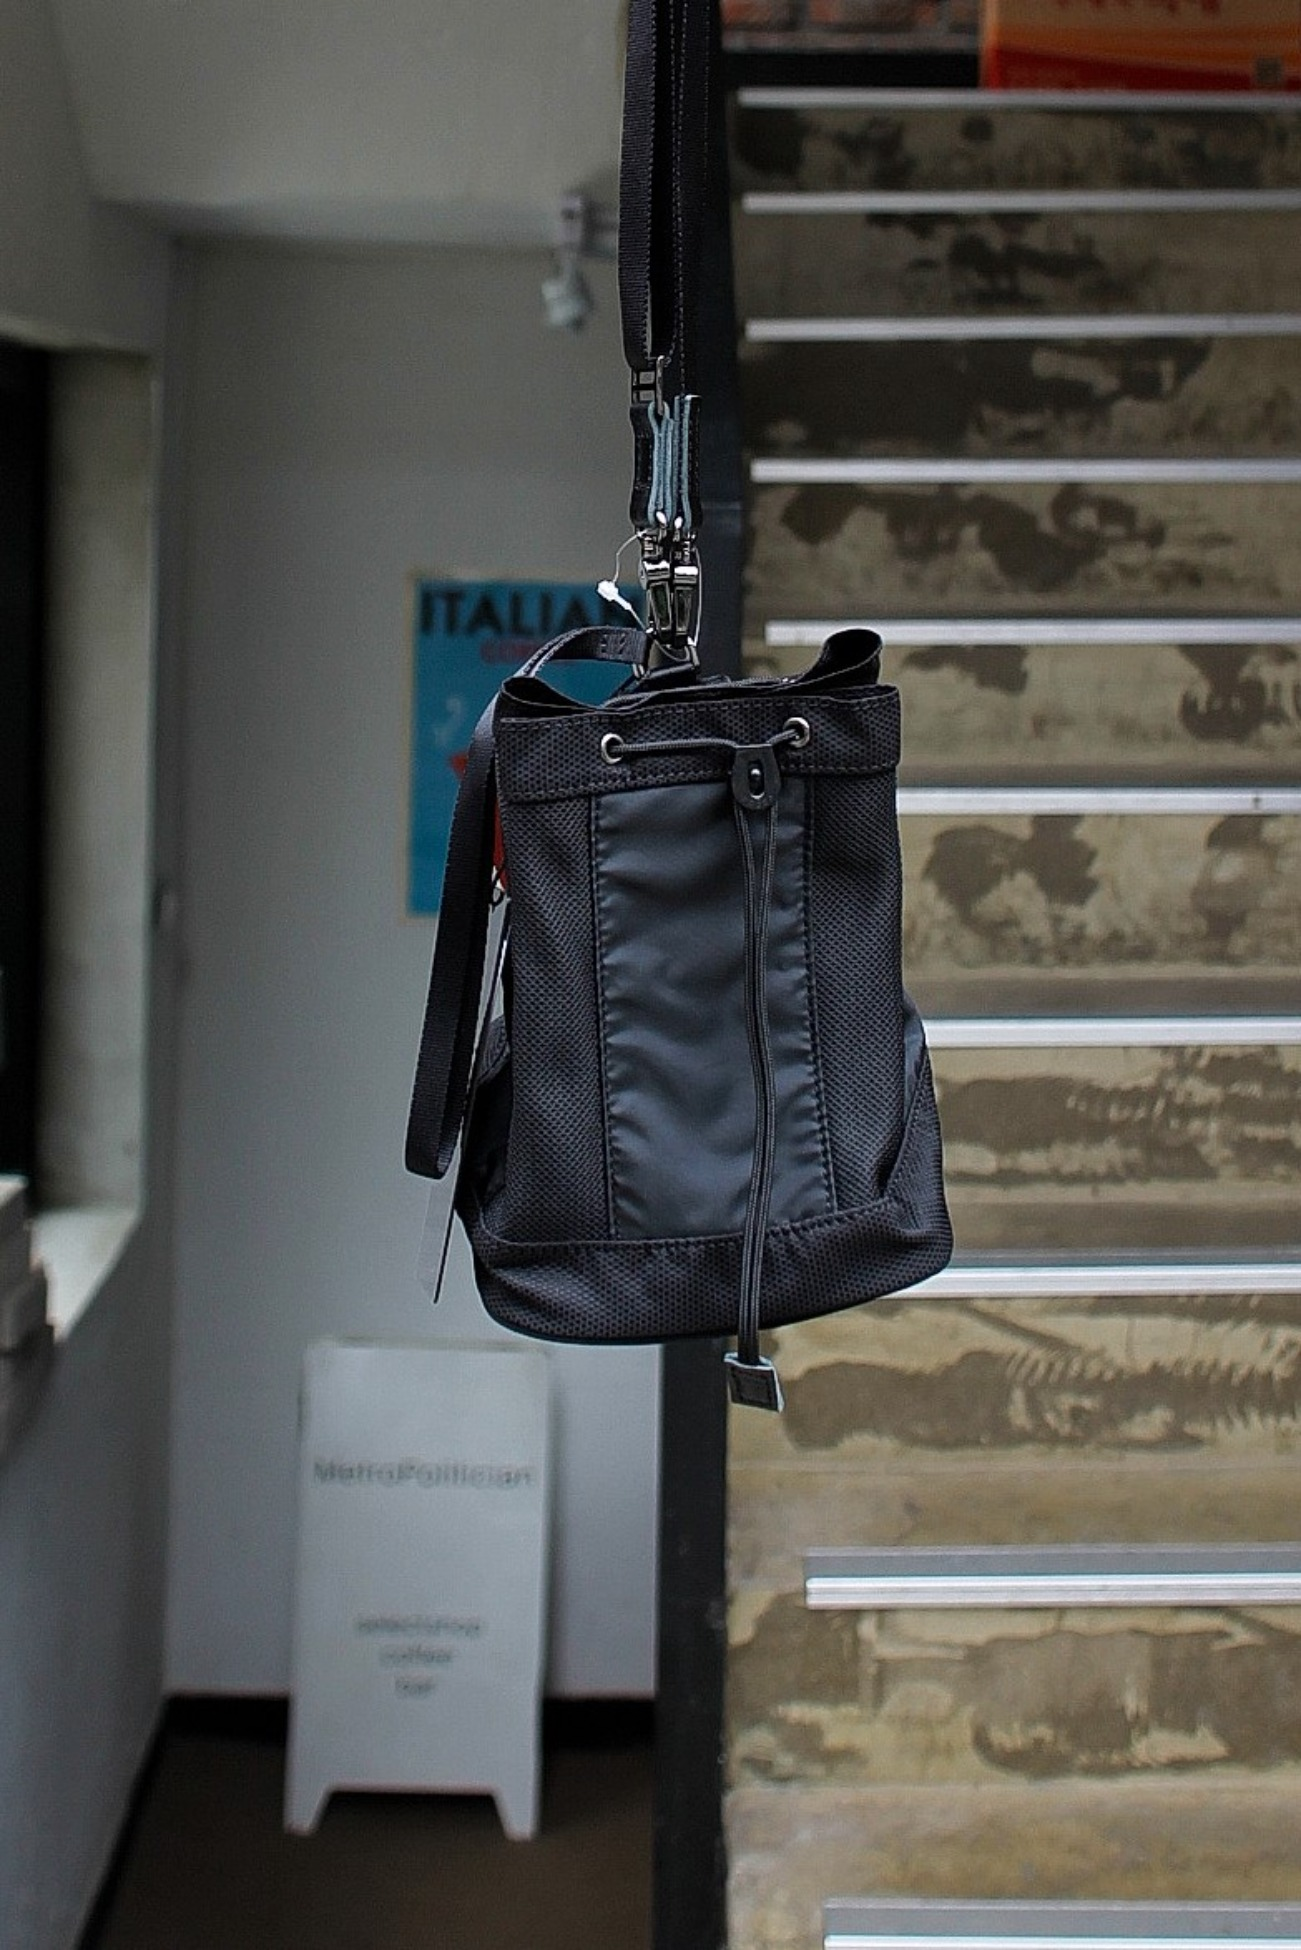 [Name.] with masterpiece Keeper Bag - Black